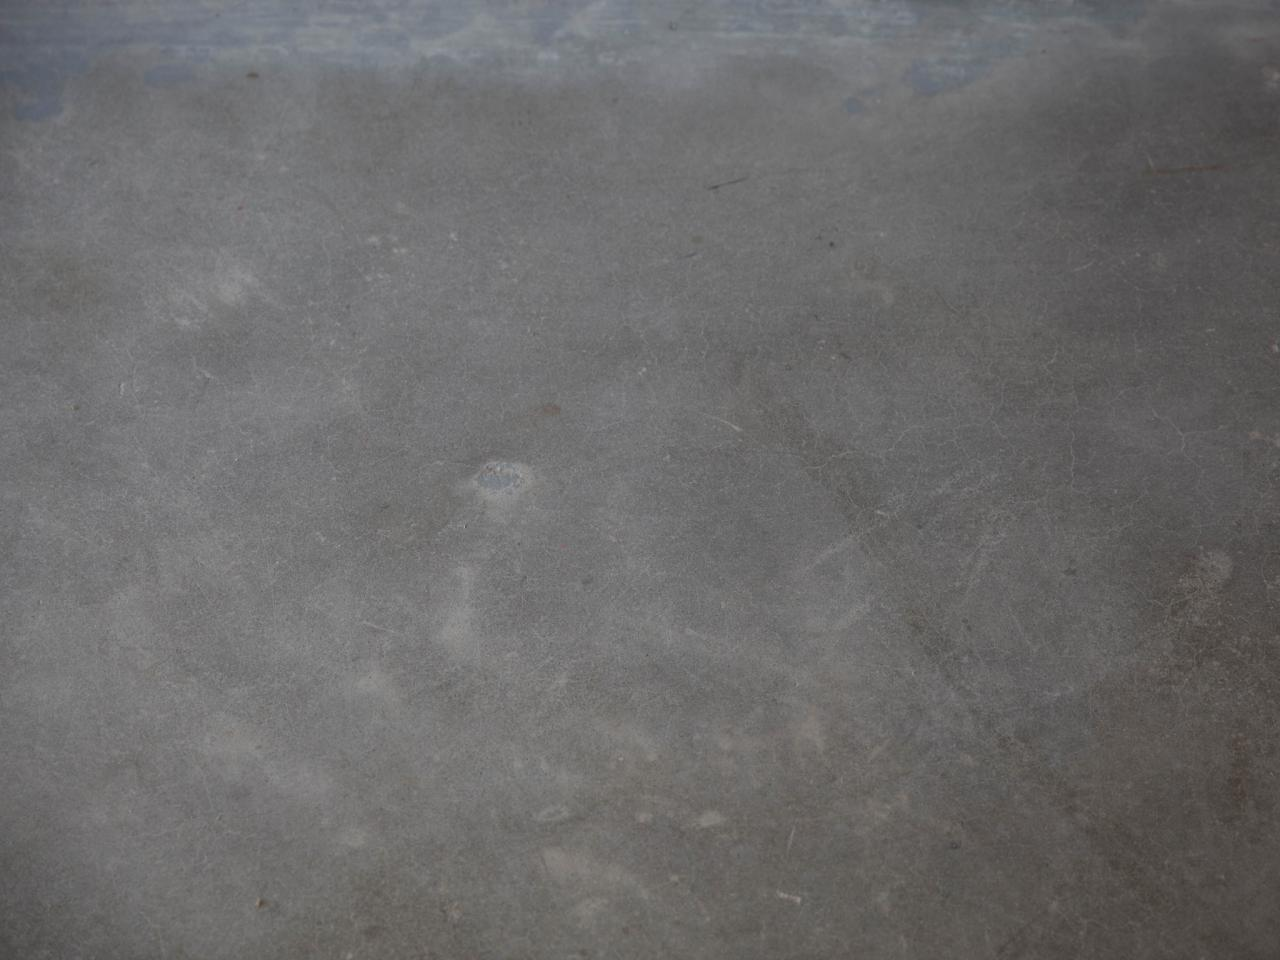 flooring concrete how to apply an acid stain look to concrete flooring how carpet transition HXOSYGK